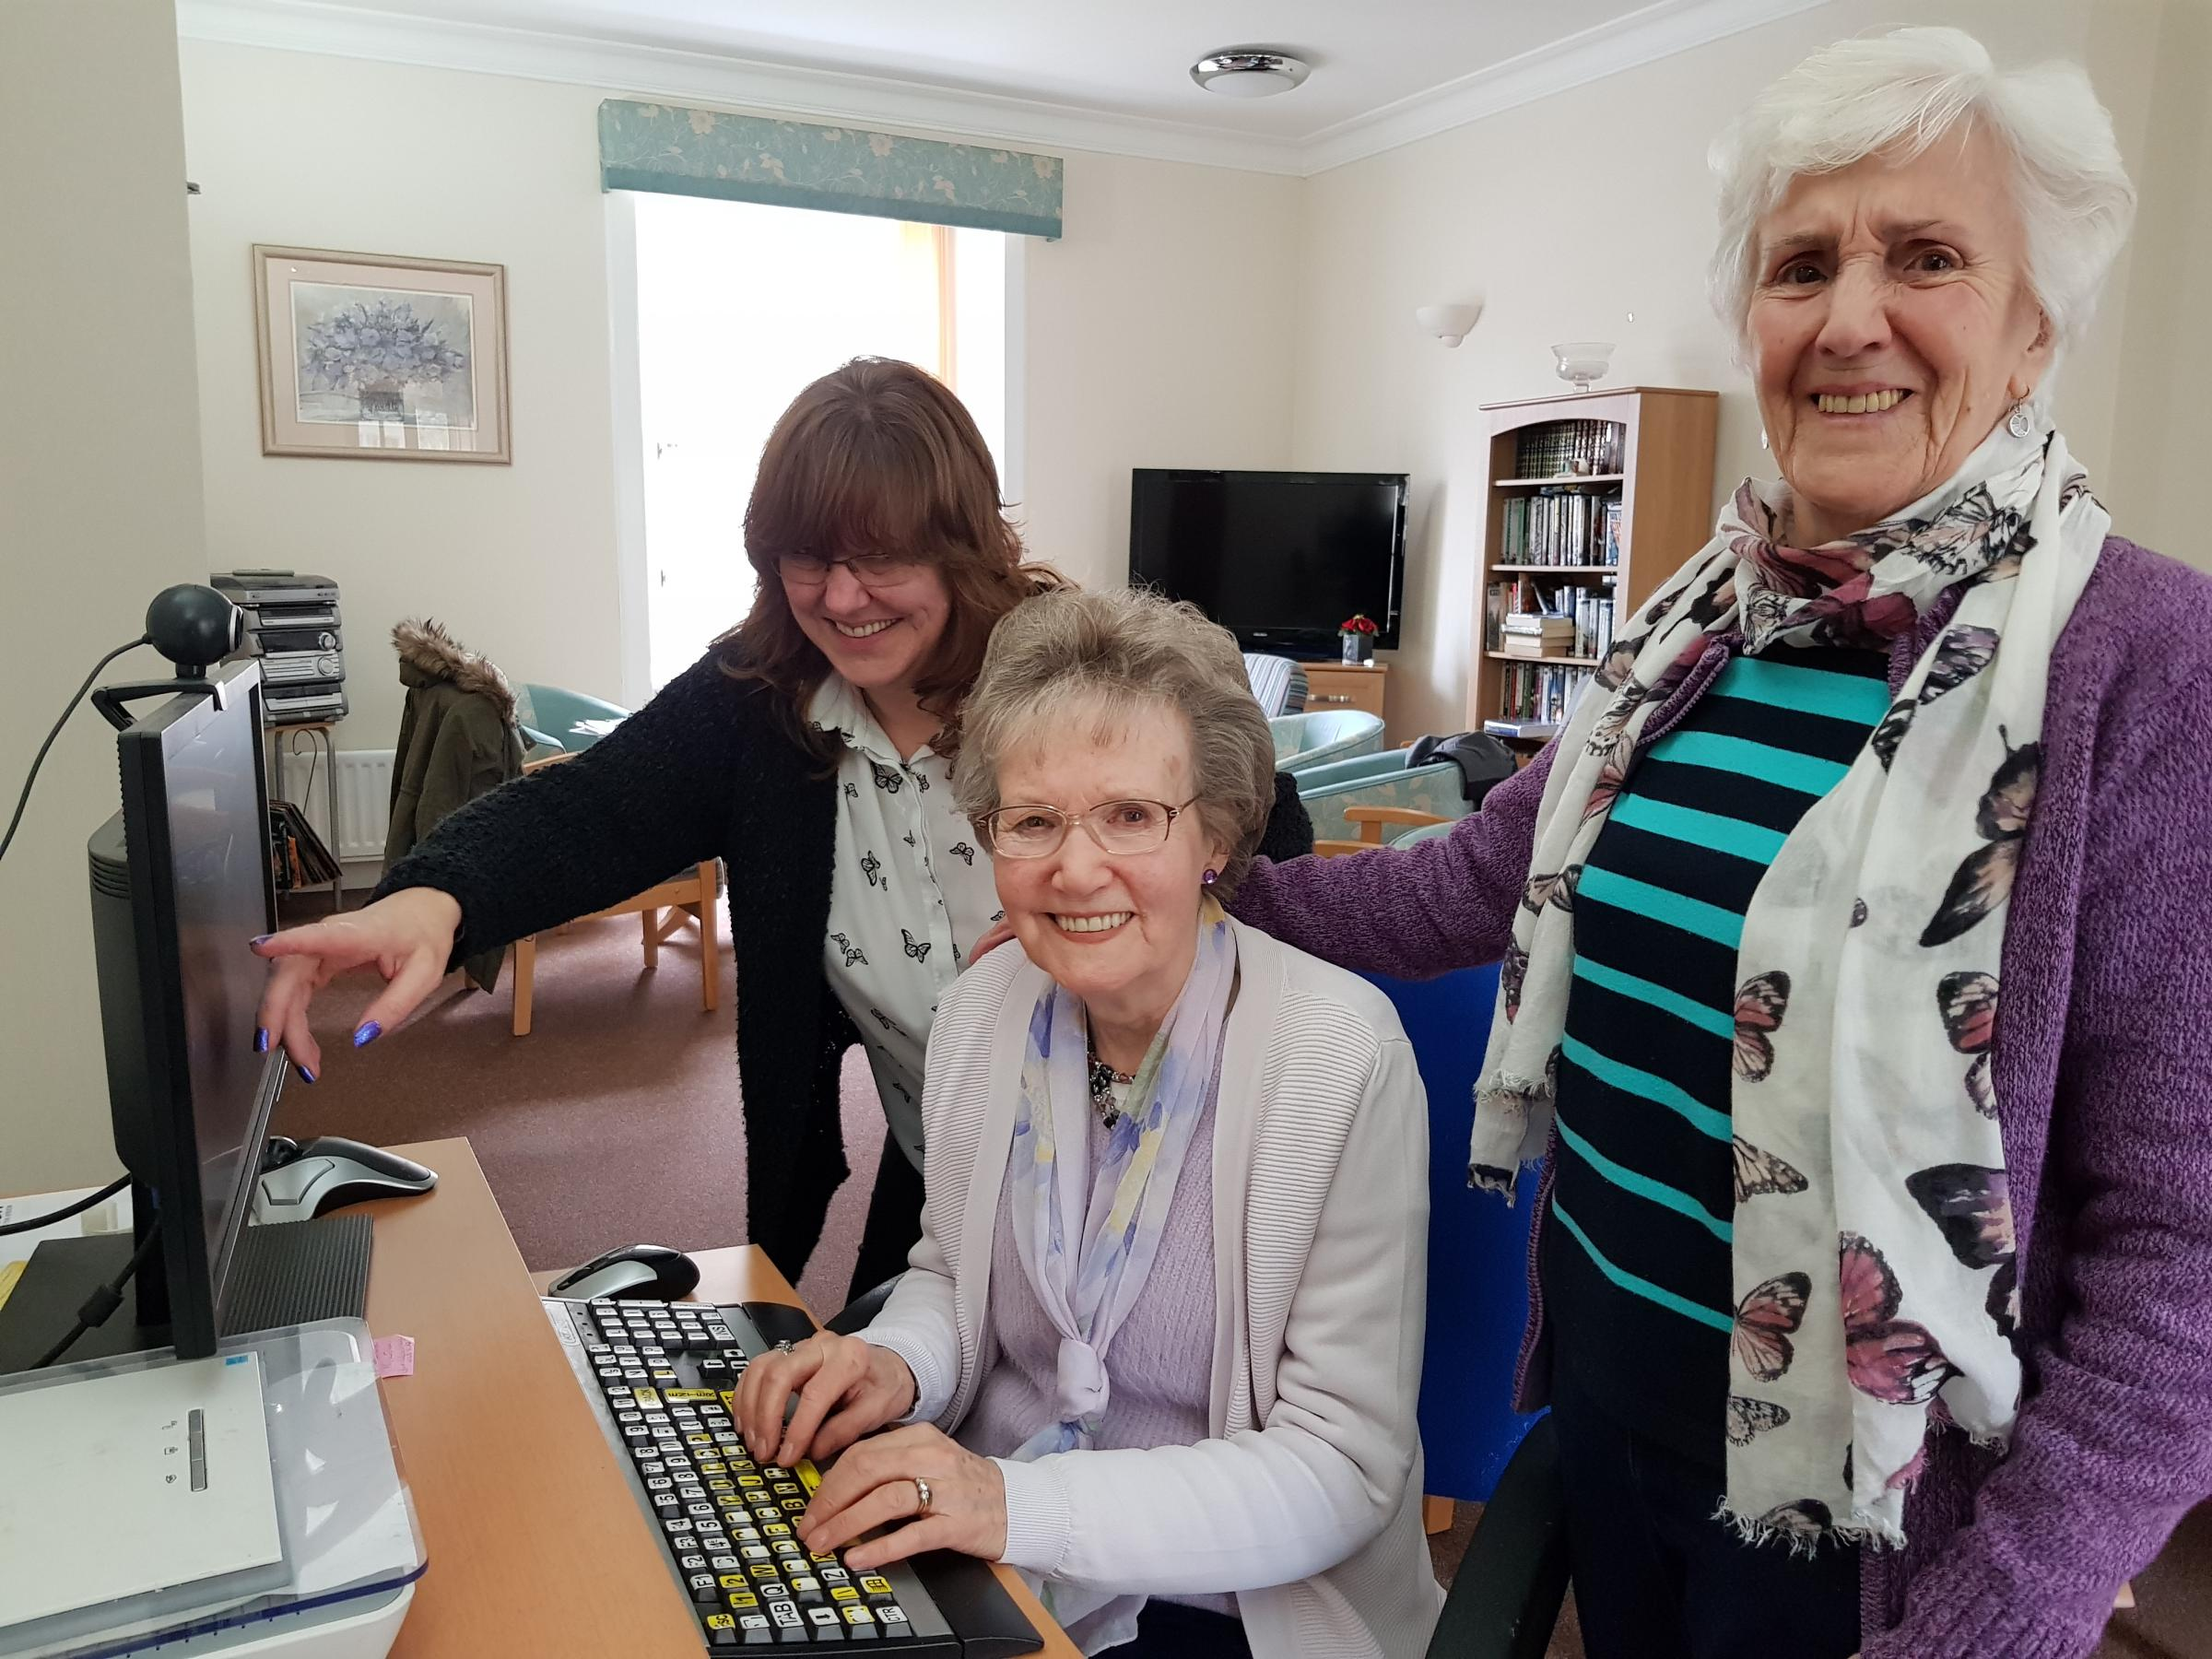 Volunteers sought for help support Stirling senior citizens